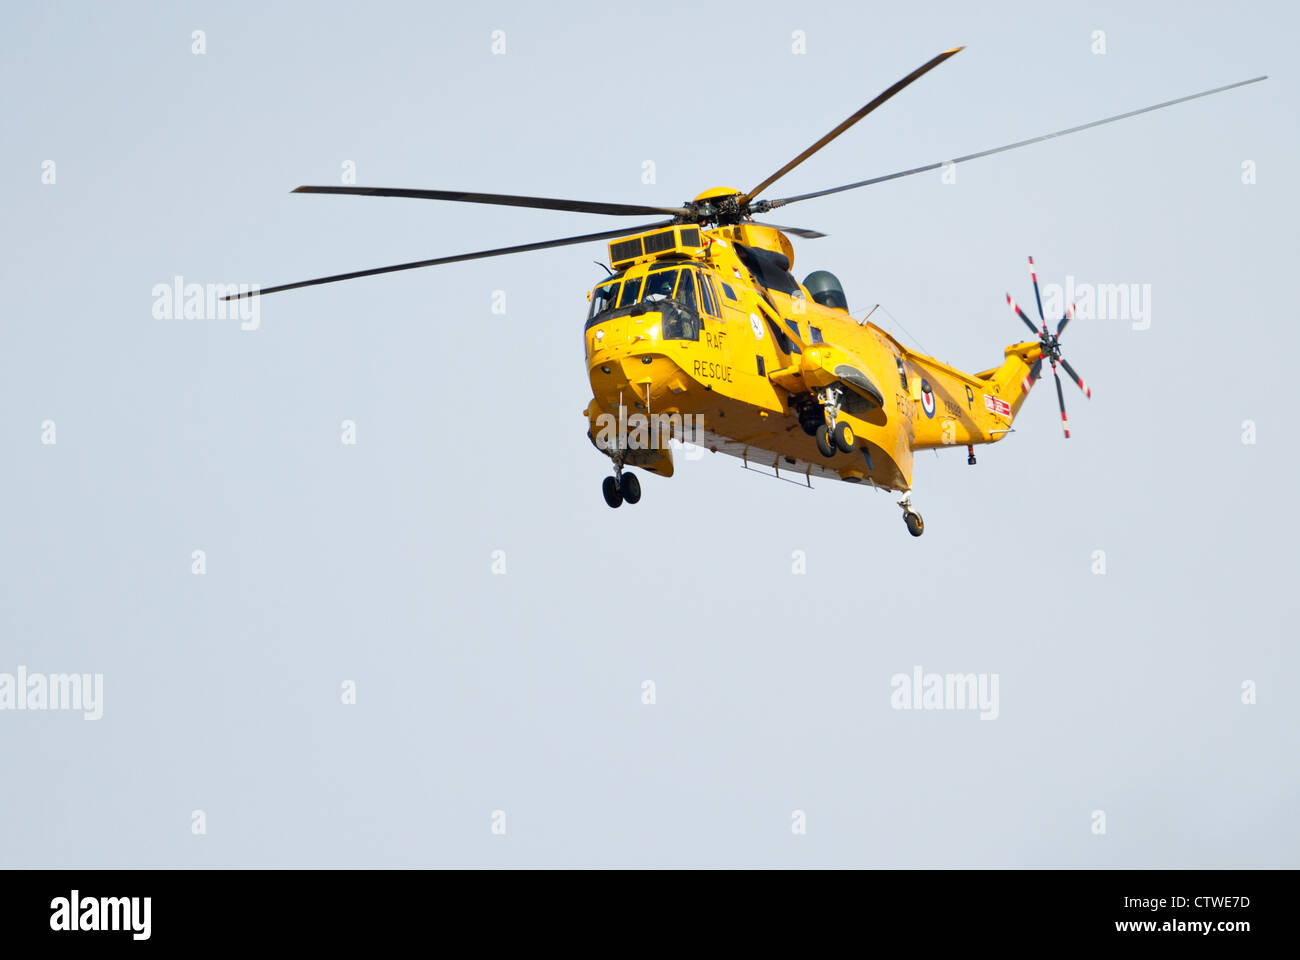 Yellow Air sea rescue helicopter in the air. Stock Photo